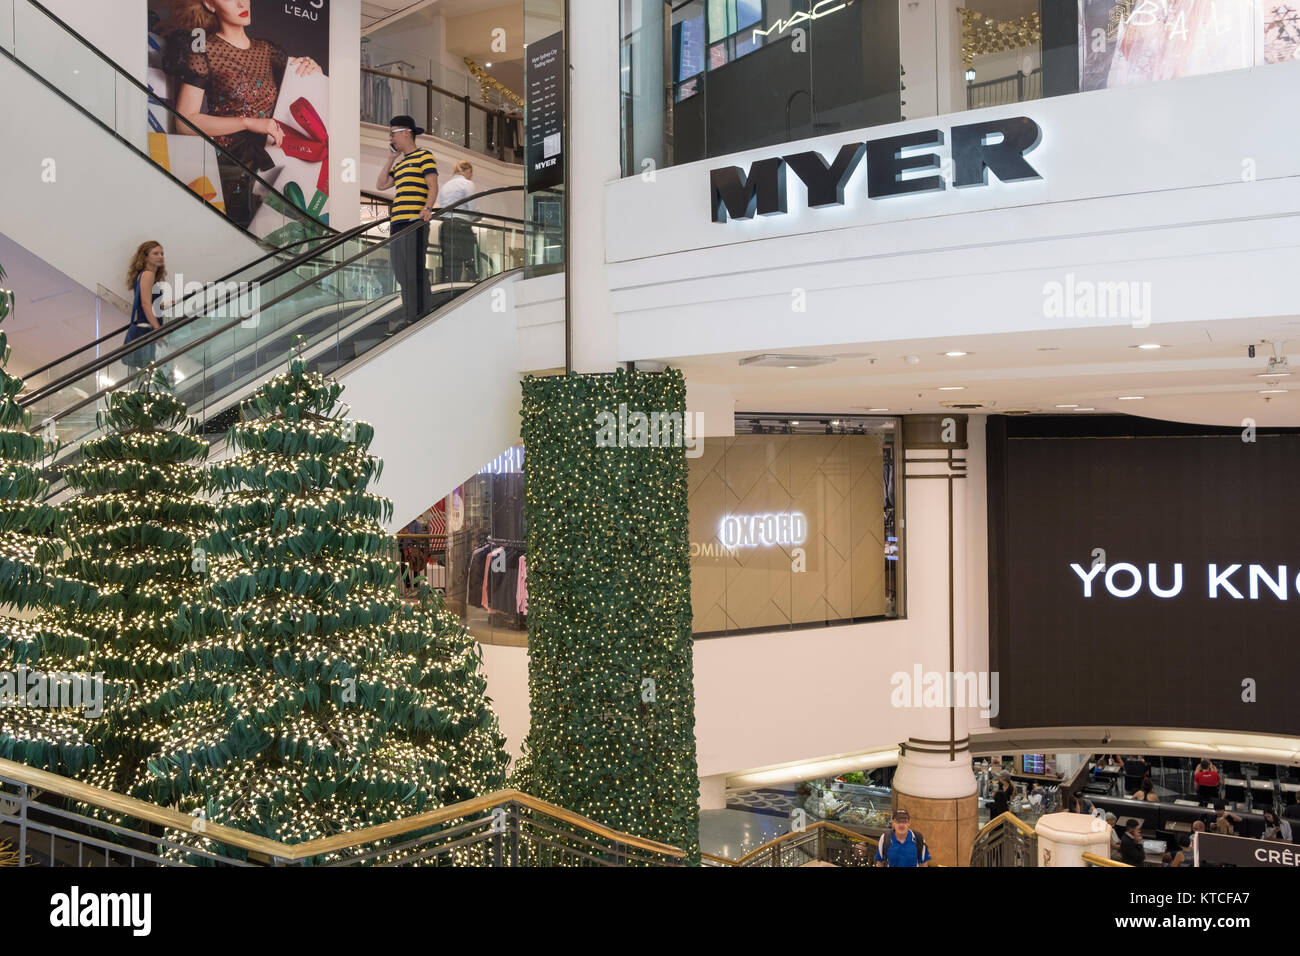 Christmas Shops Sydney Entrance To Myer Department Store In Sydney At Christmas Time With